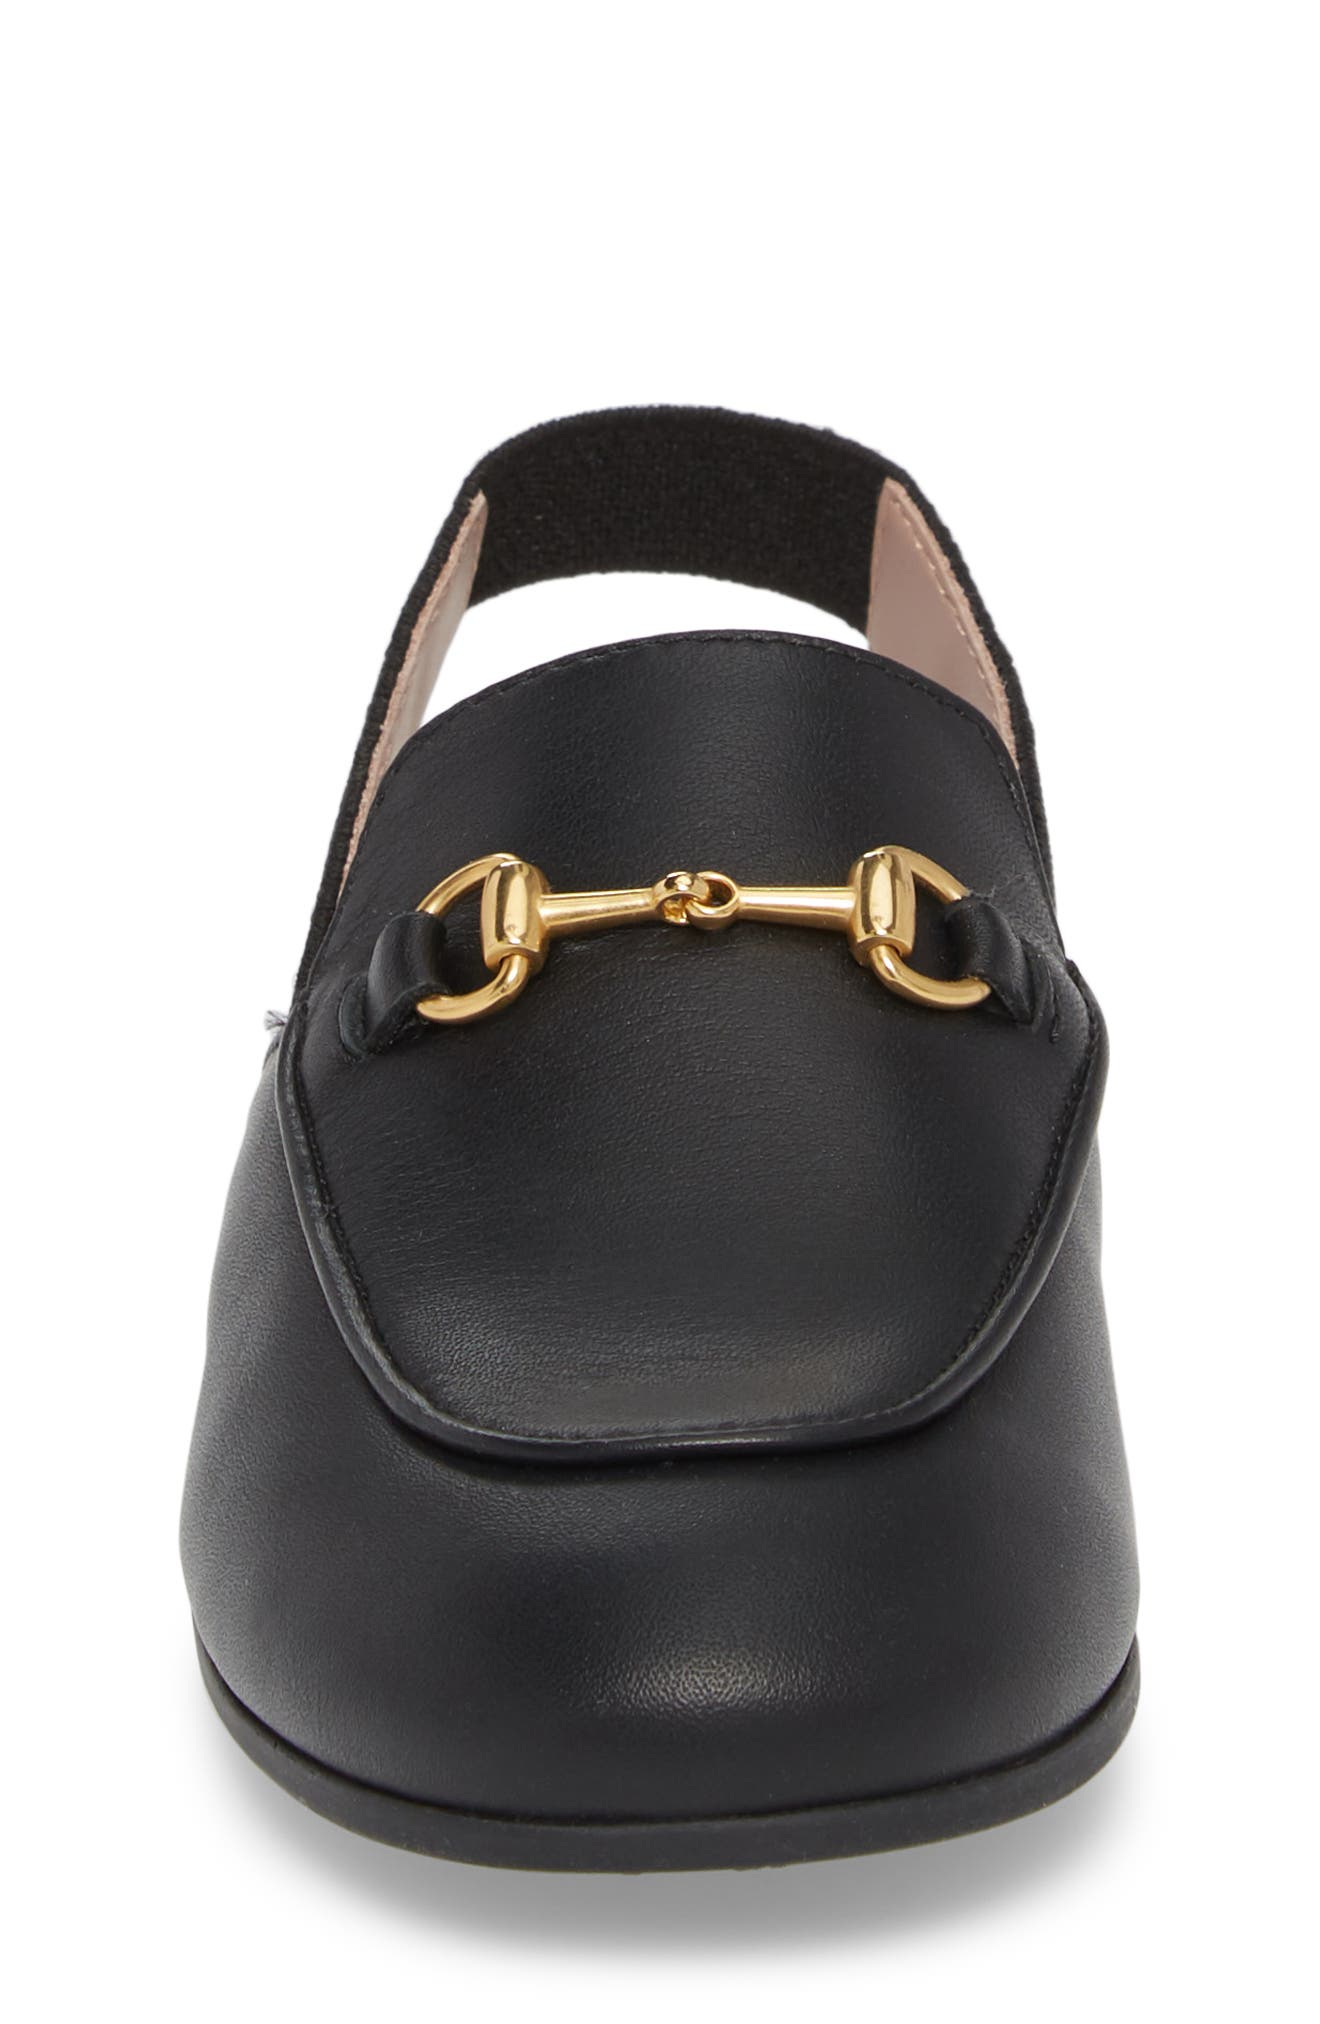 GUCCI, Princetown Loafer Mule, Alternate thumbnail 4, color, BLACK/ BLACK